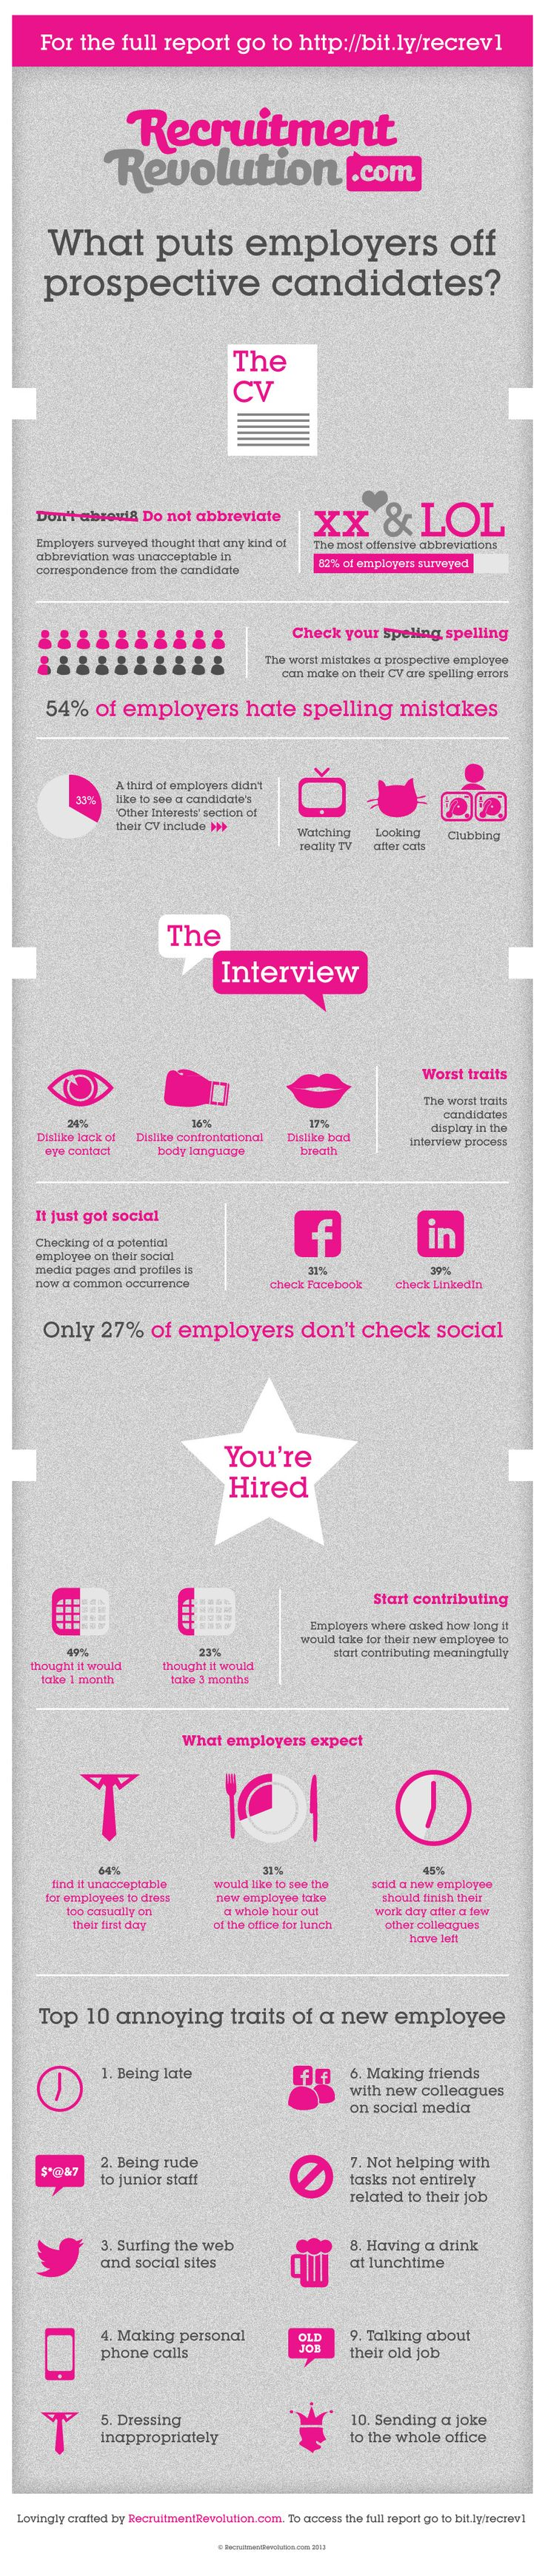 best images about job search resume interviewing tips on 17 best images about job search resume interviewing tips resume tips interview and job seekers